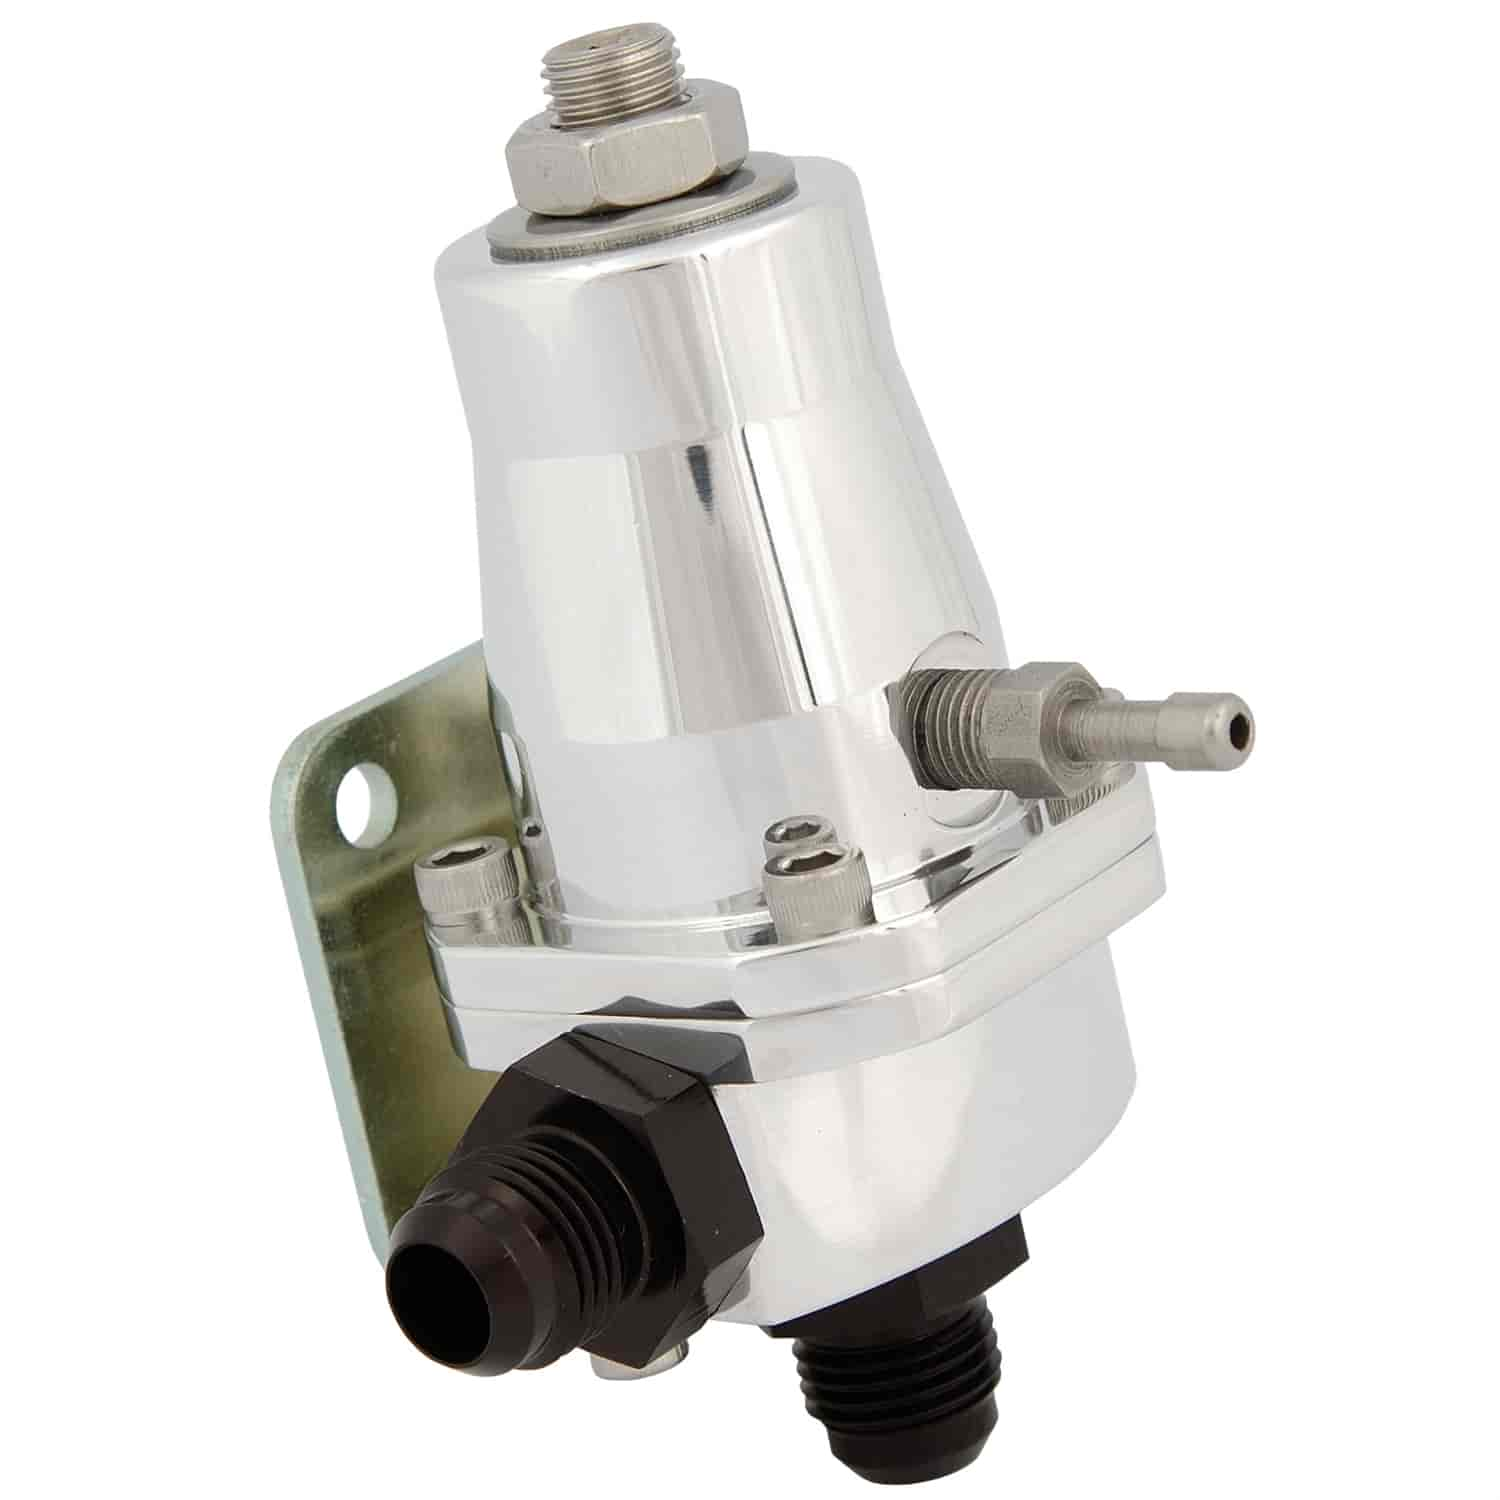 Aeromotive 13155 - Aeromotive Compact EFI Fuel Pressure Regulator